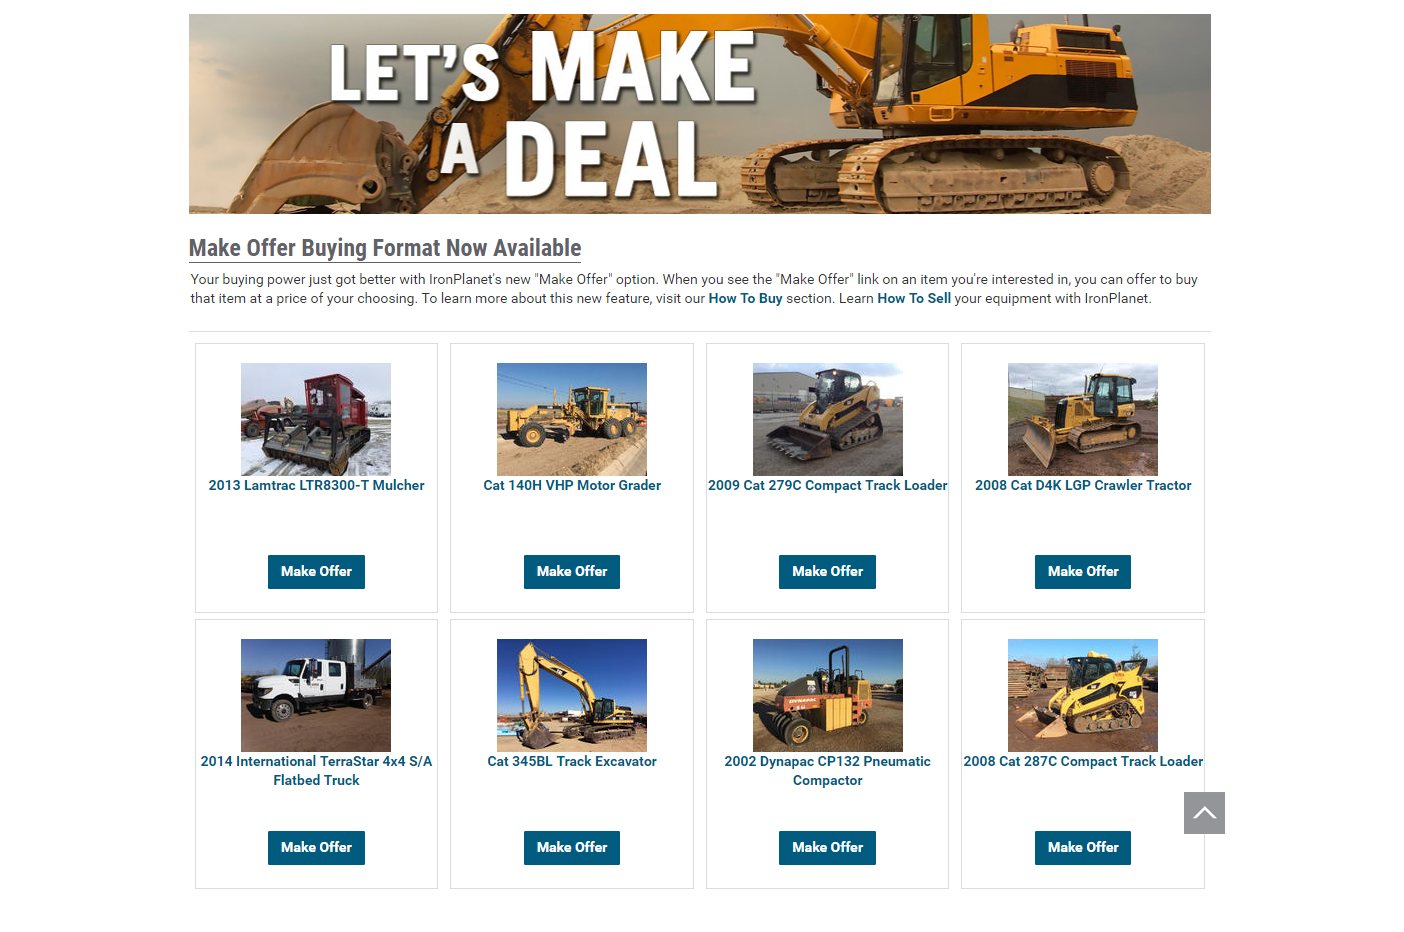 IronPlanet Offers Fixed and Negotiated Pricing Format